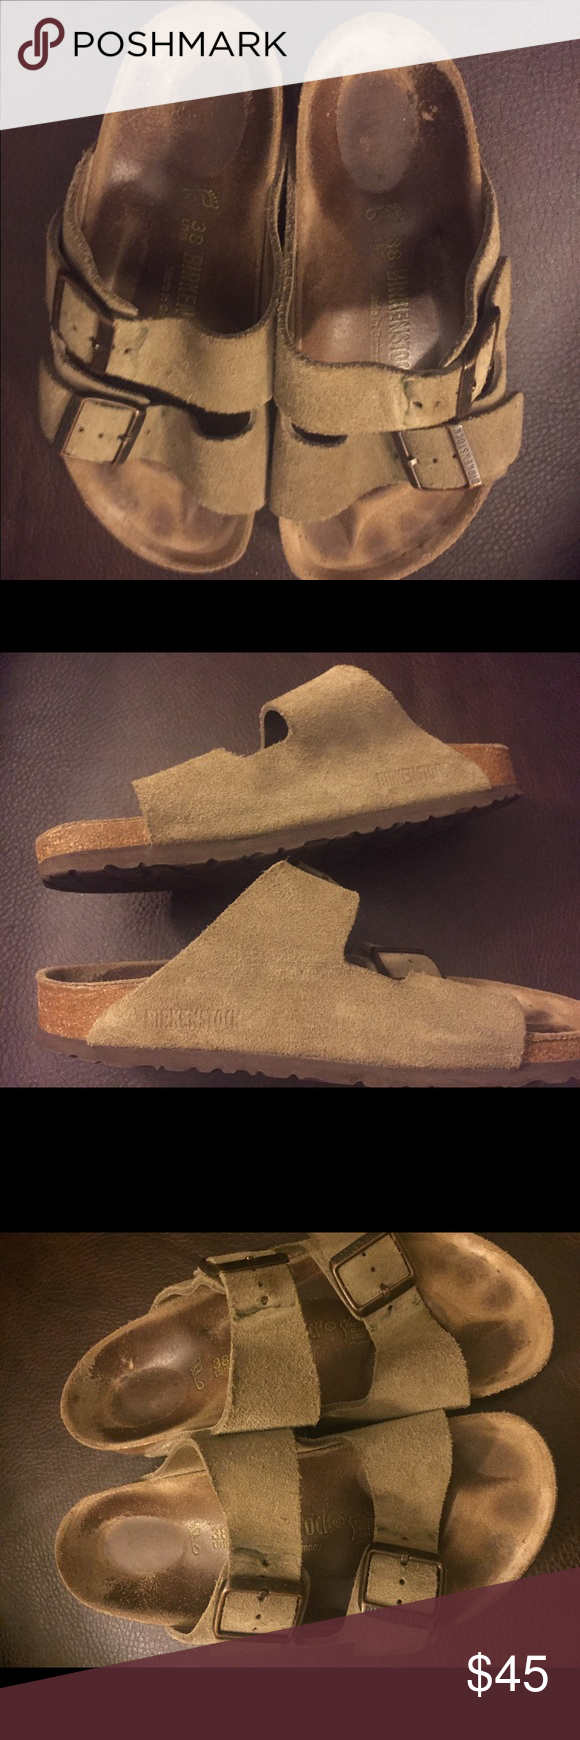 d0ab86a6066f1a3778205f82bf8c0074 - How Do I Know What Size Birkenstocks To Get